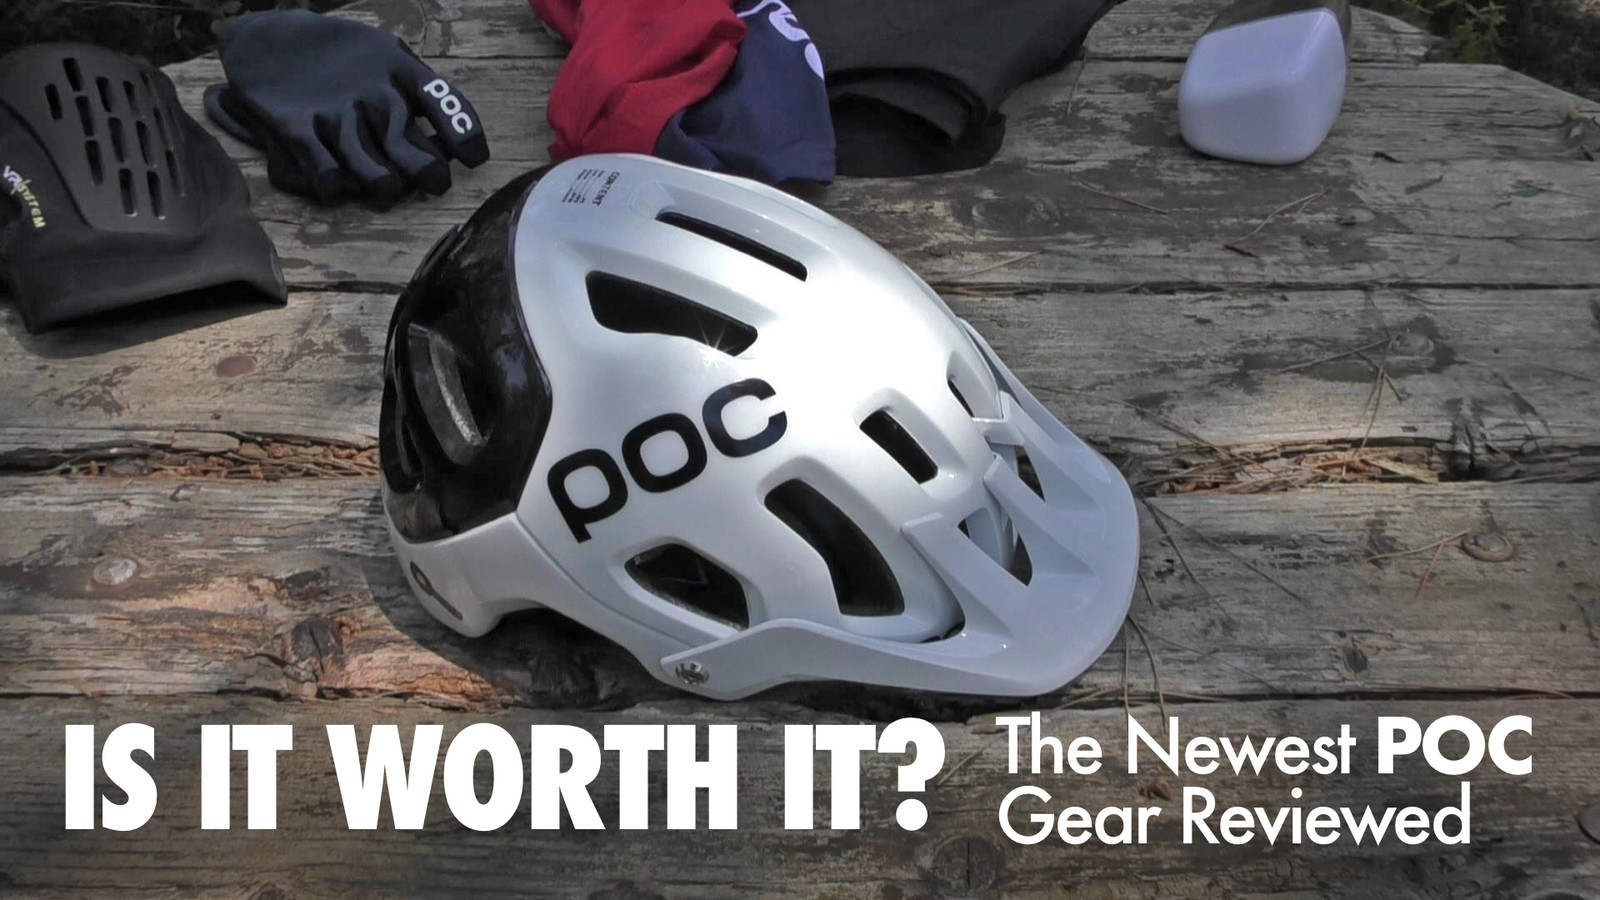 Is It Worth It? The Newest POC Gear Reviewed